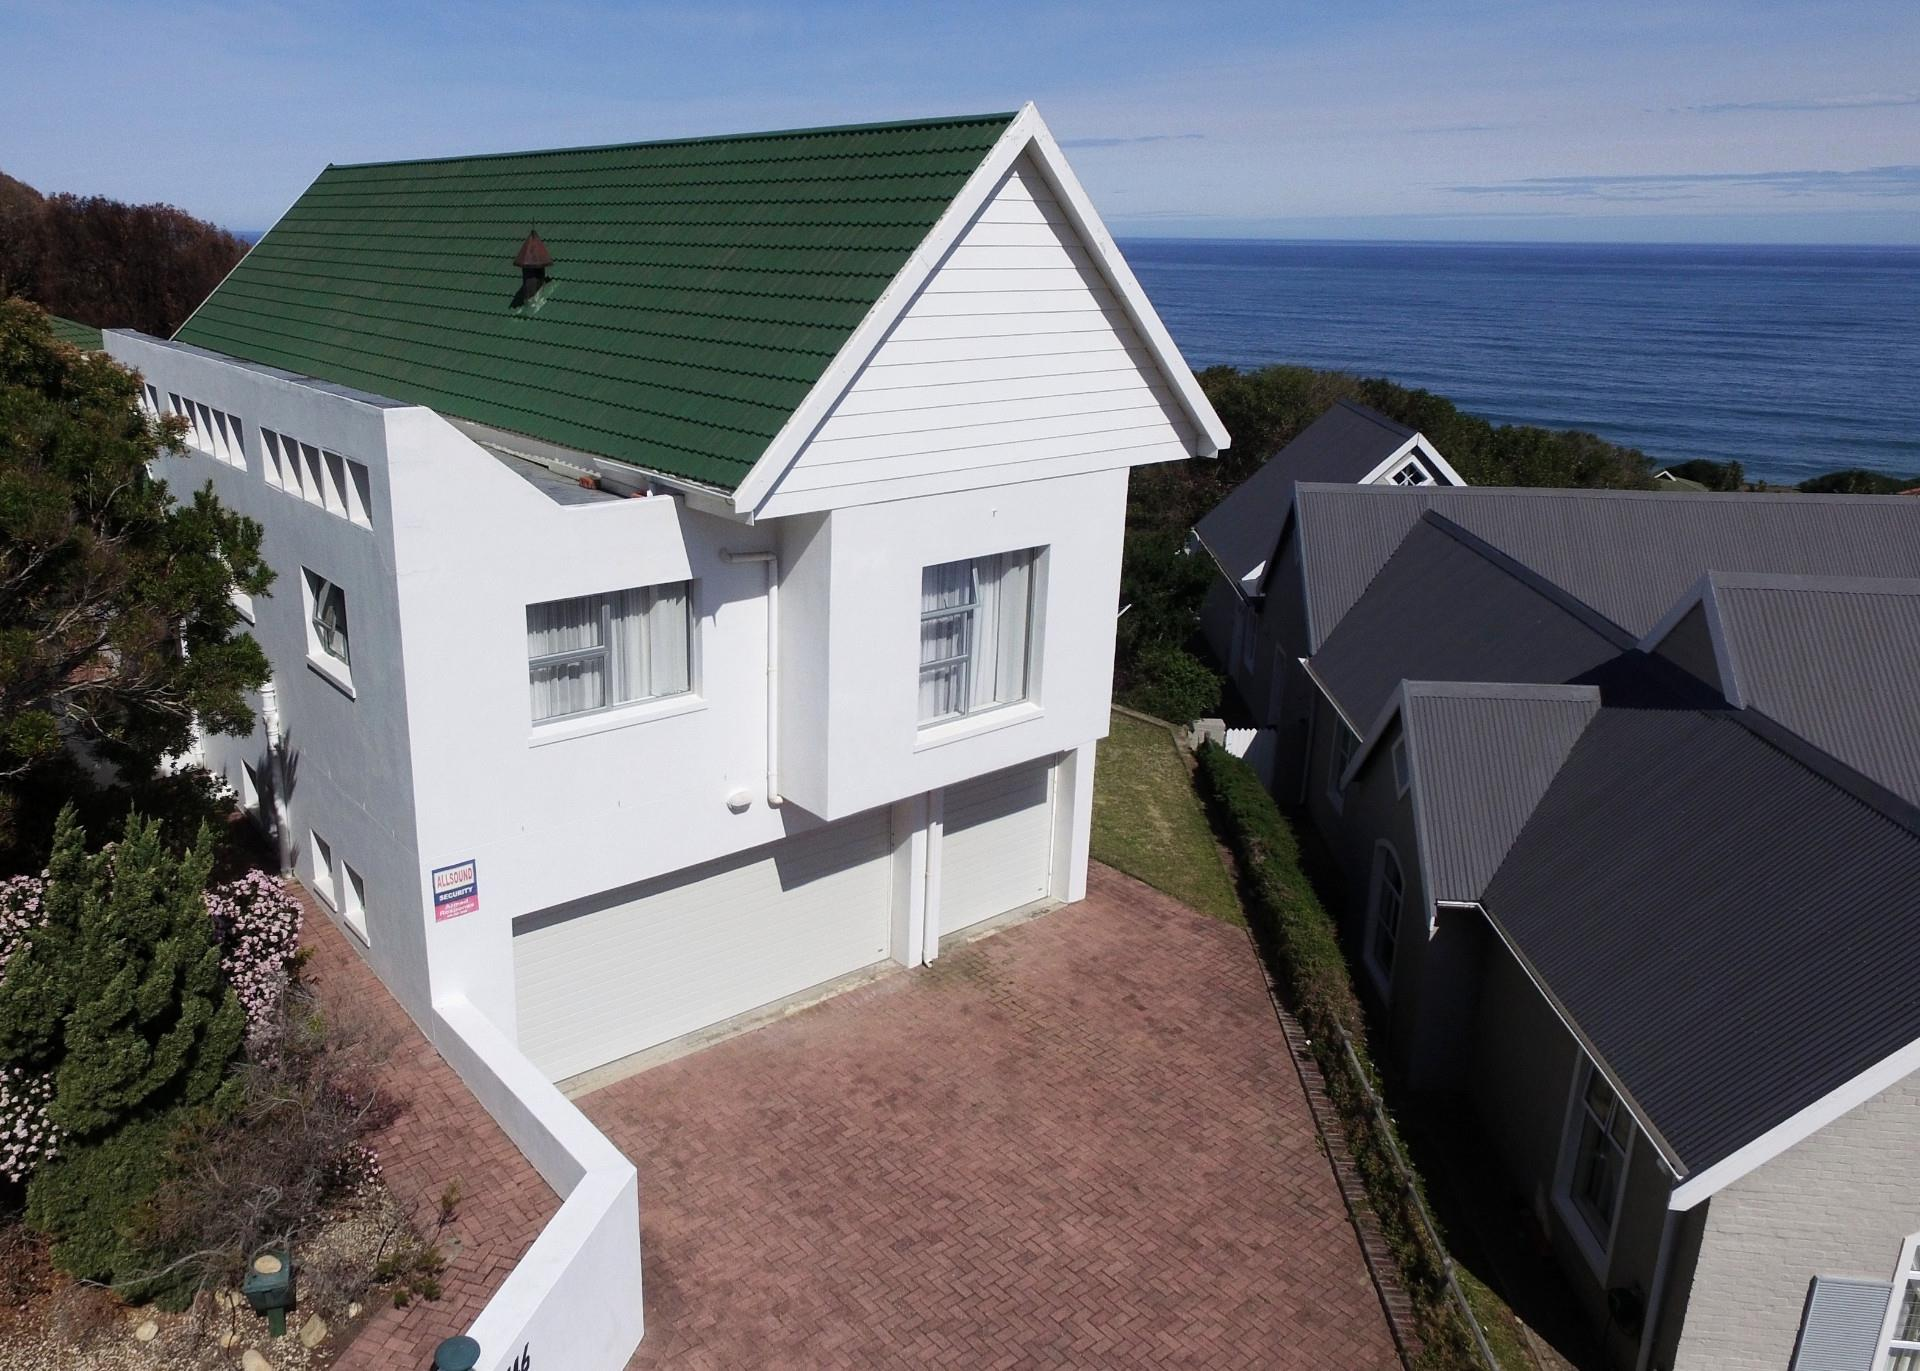 4 Bedroom House For Sale in Brenton On Sea